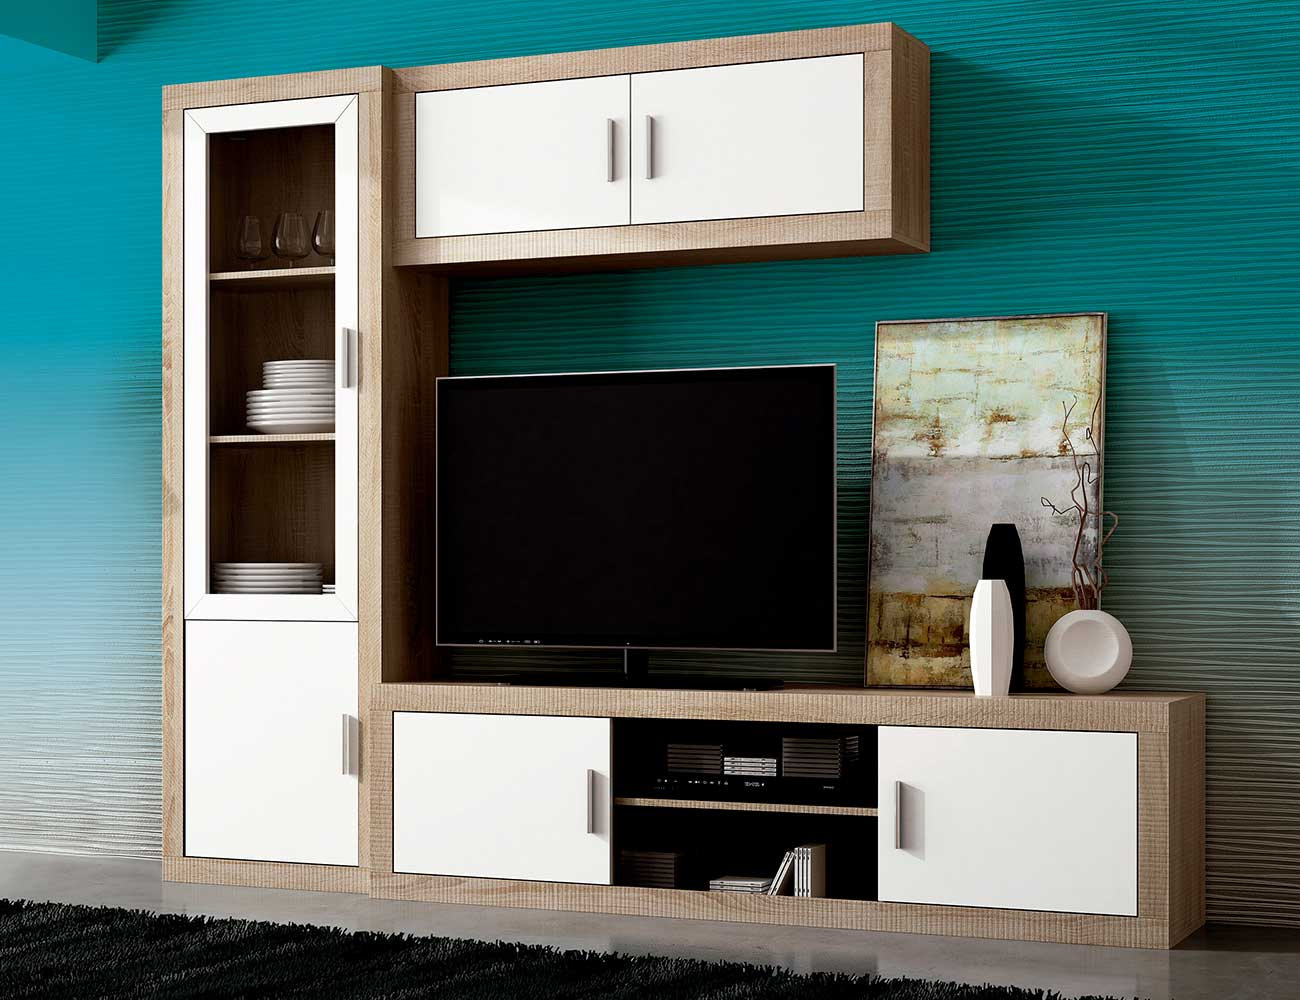 Mueble de sal n estilo moderno color cambrian blanco 240 for Mueble salon 180 cm